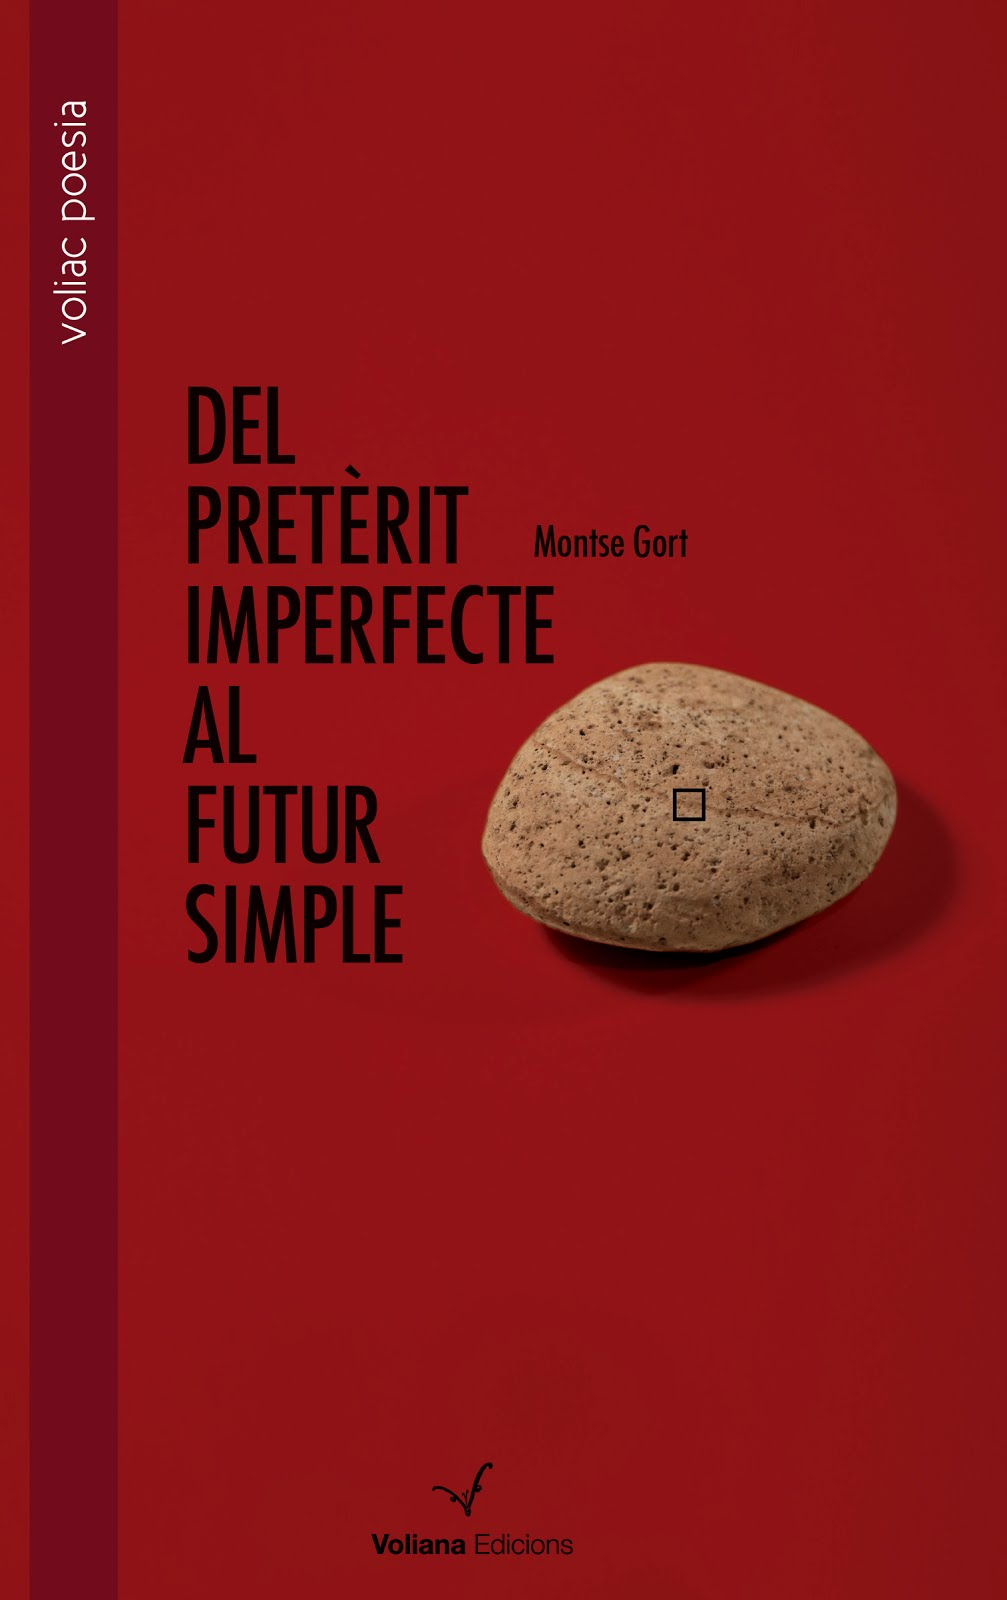 Del pretèrit imperfecte al futur simple